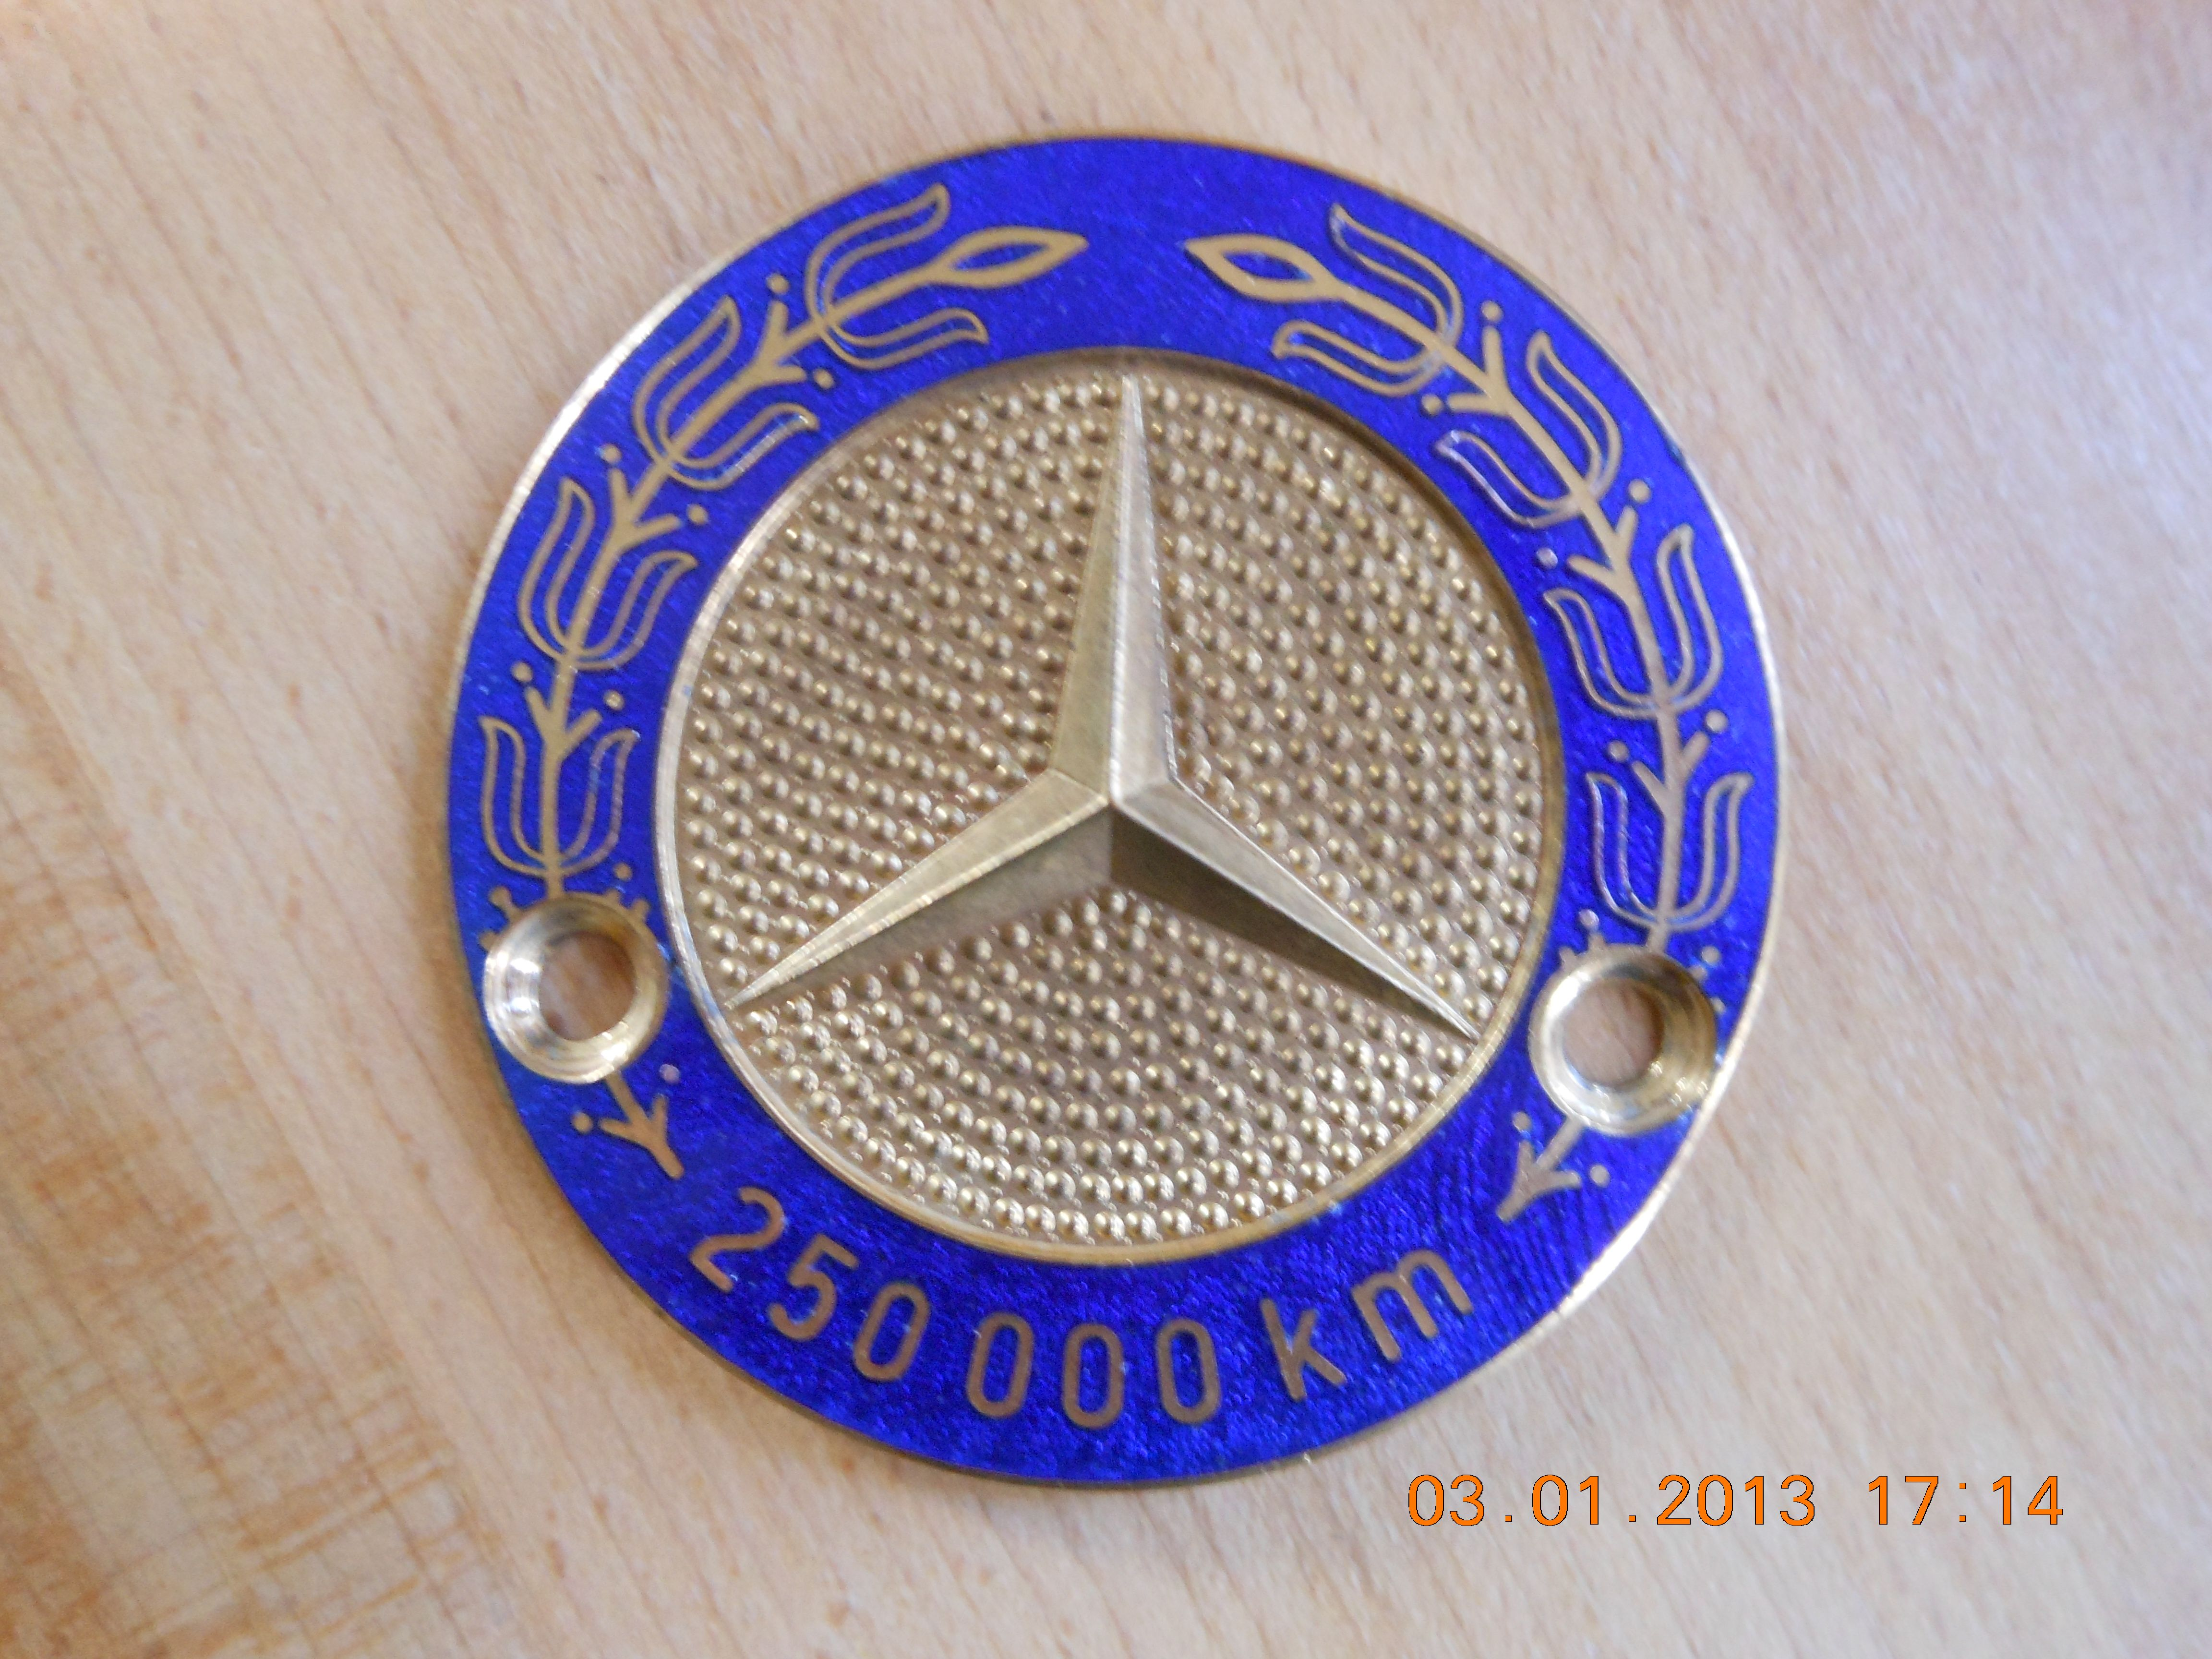 Mercedes benz 250 000 km high mileage badge for sale a for Mercedes benz badges for sale